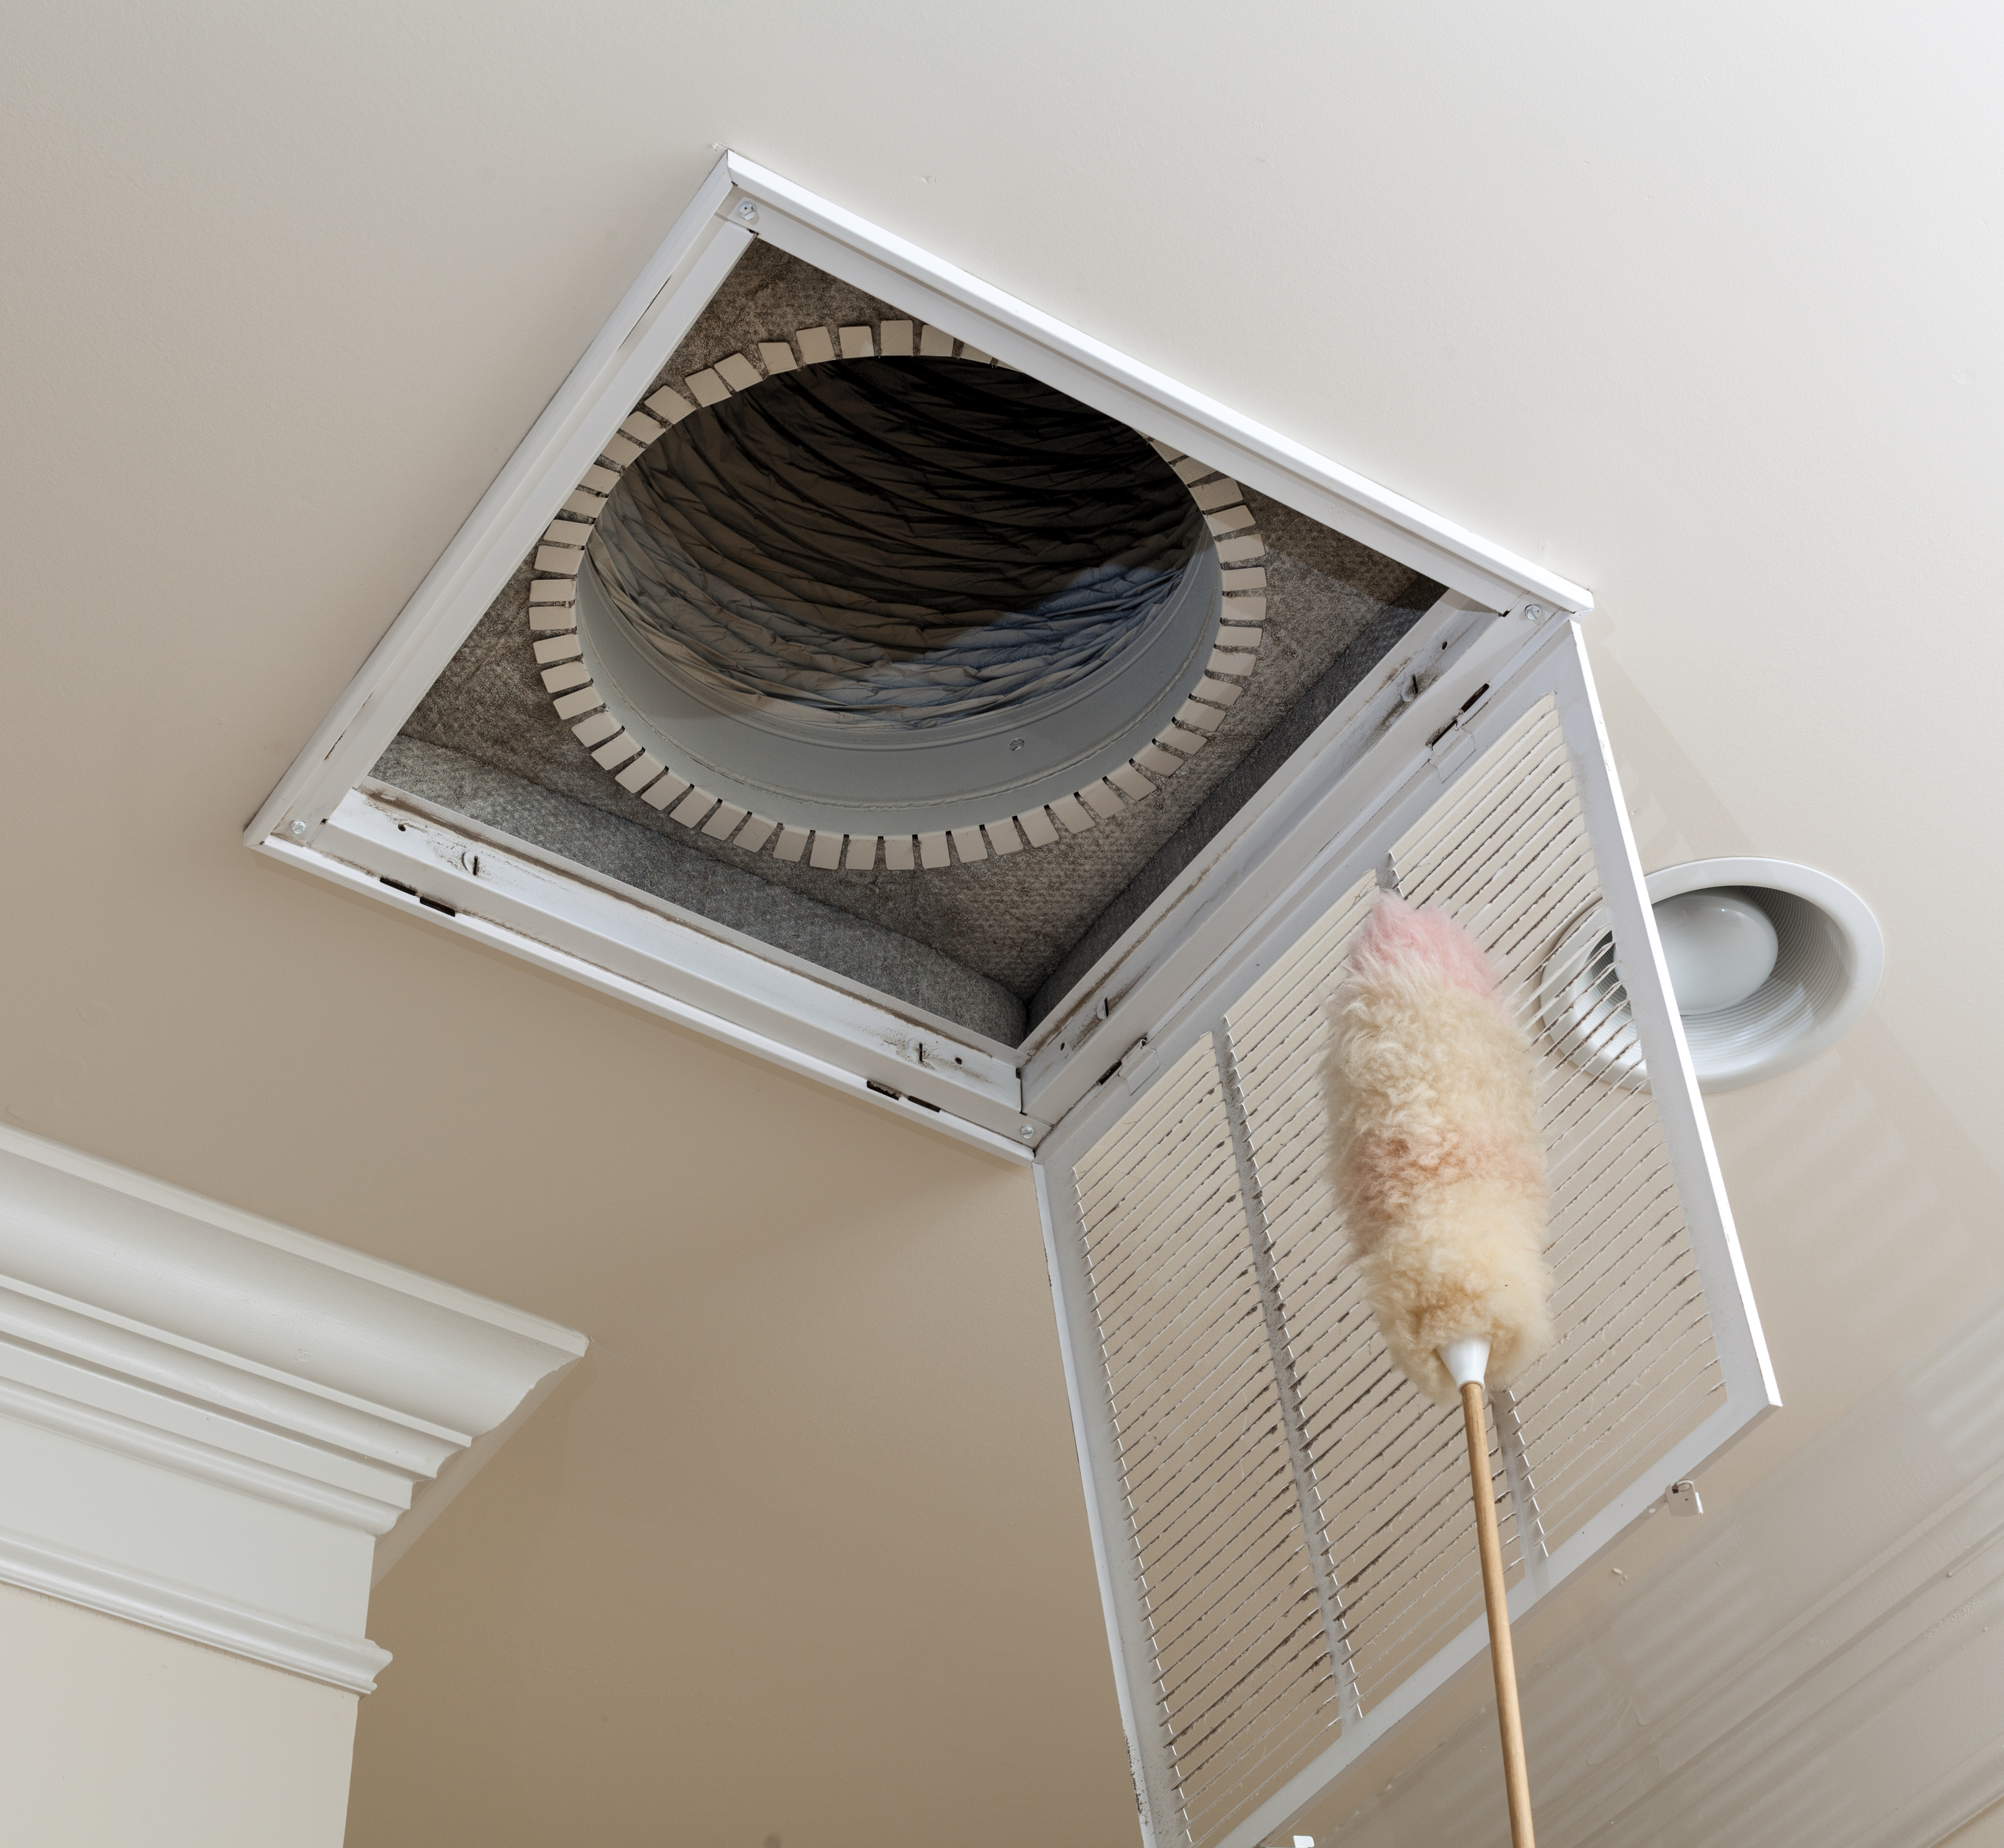 Why Routine HVAC Cleaning in Your Home is Important